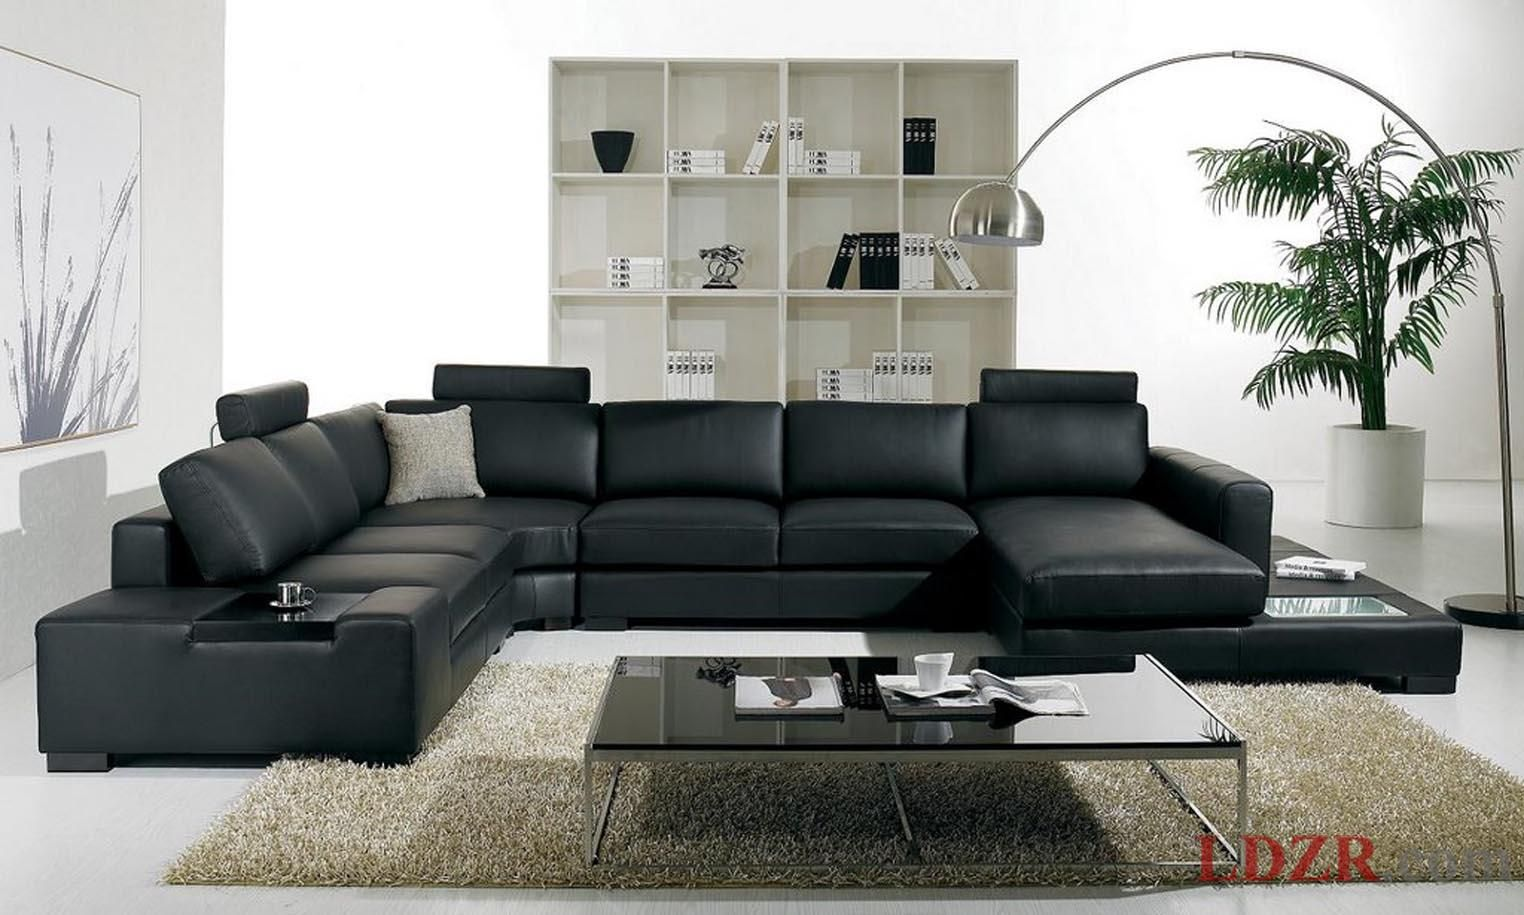 Decorating Living Room With Sectional Sofa | Living Room ...